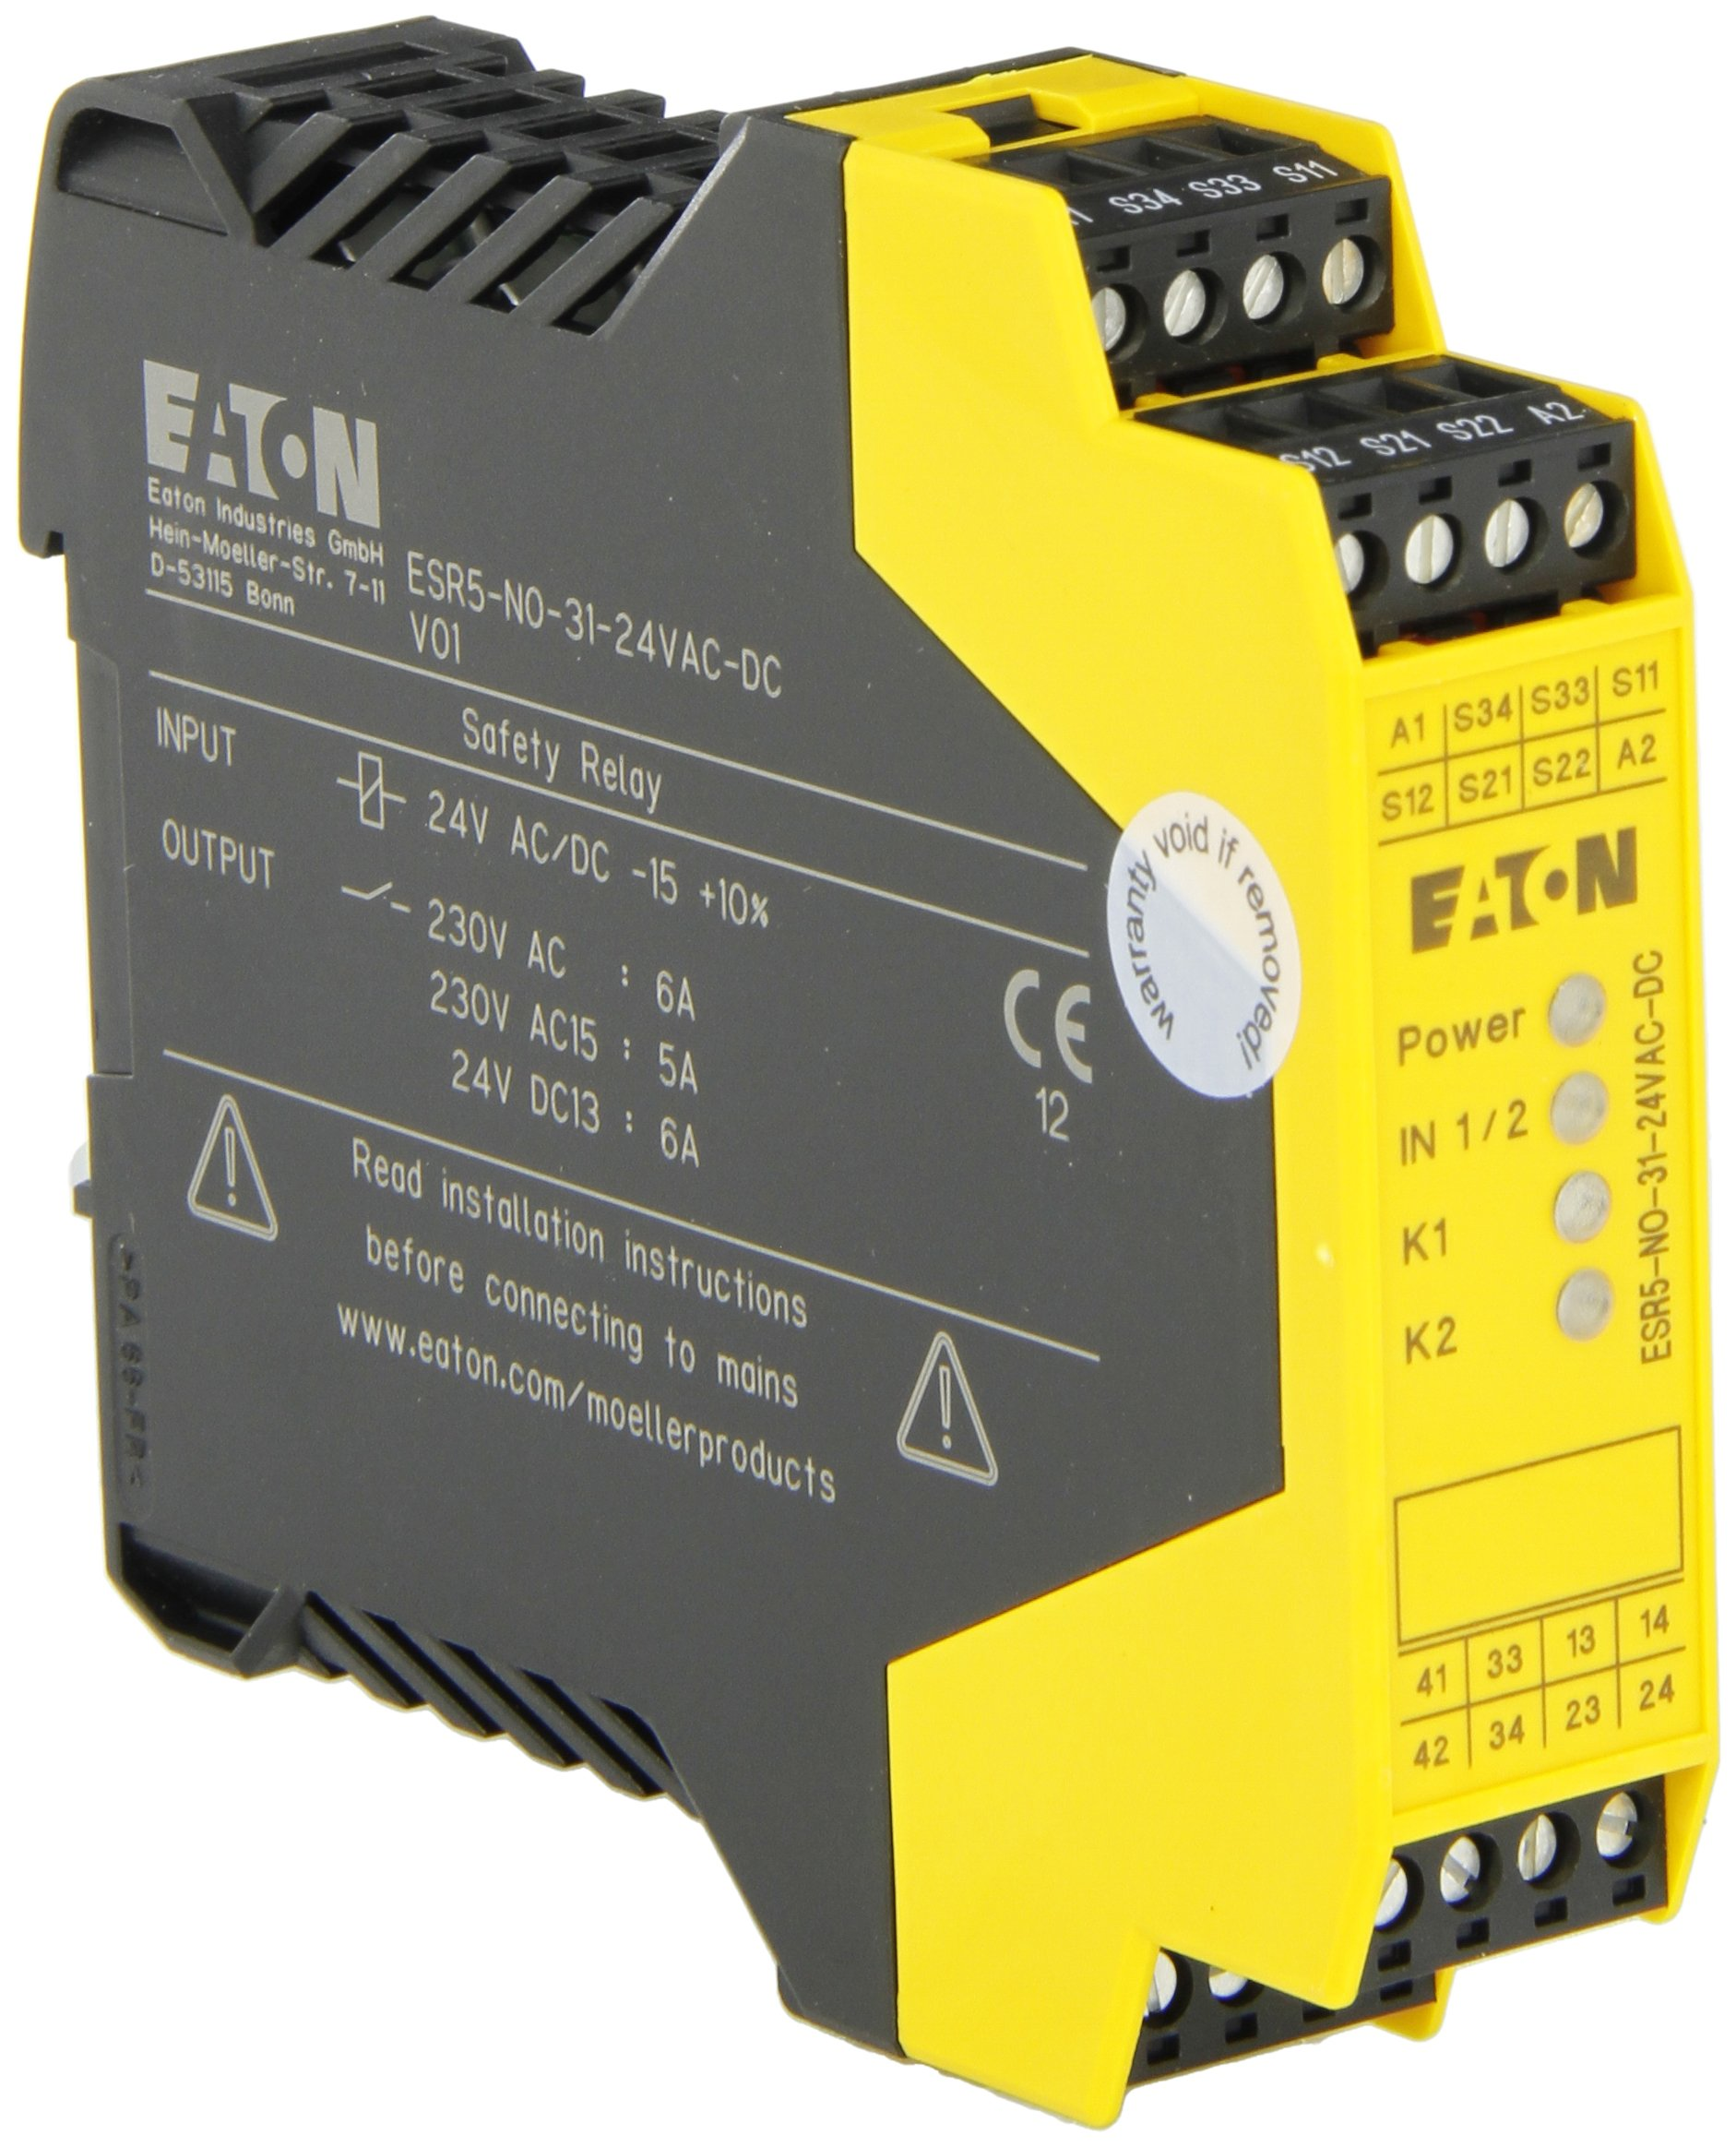 Eaton ESR5-NO-31-24VAC-DC Safety Relay, Single Dual Channel Main Unit, 3 NO Safety Output, 1 NC Signal Output, 24 VAC/DC Control Voltage